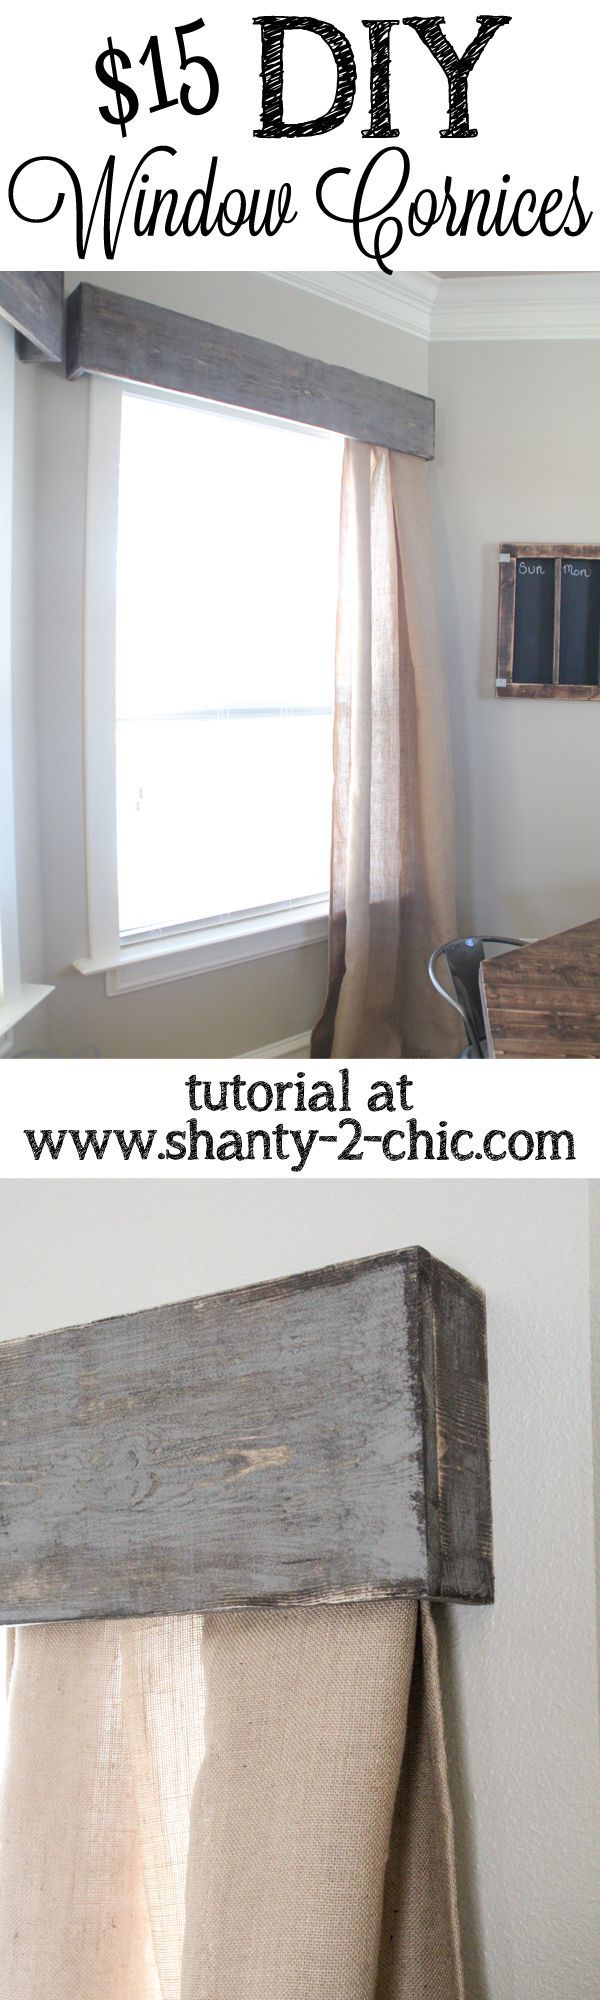 25 best window cornices ideas on pinterest window cornice diy diy wooden window cornice